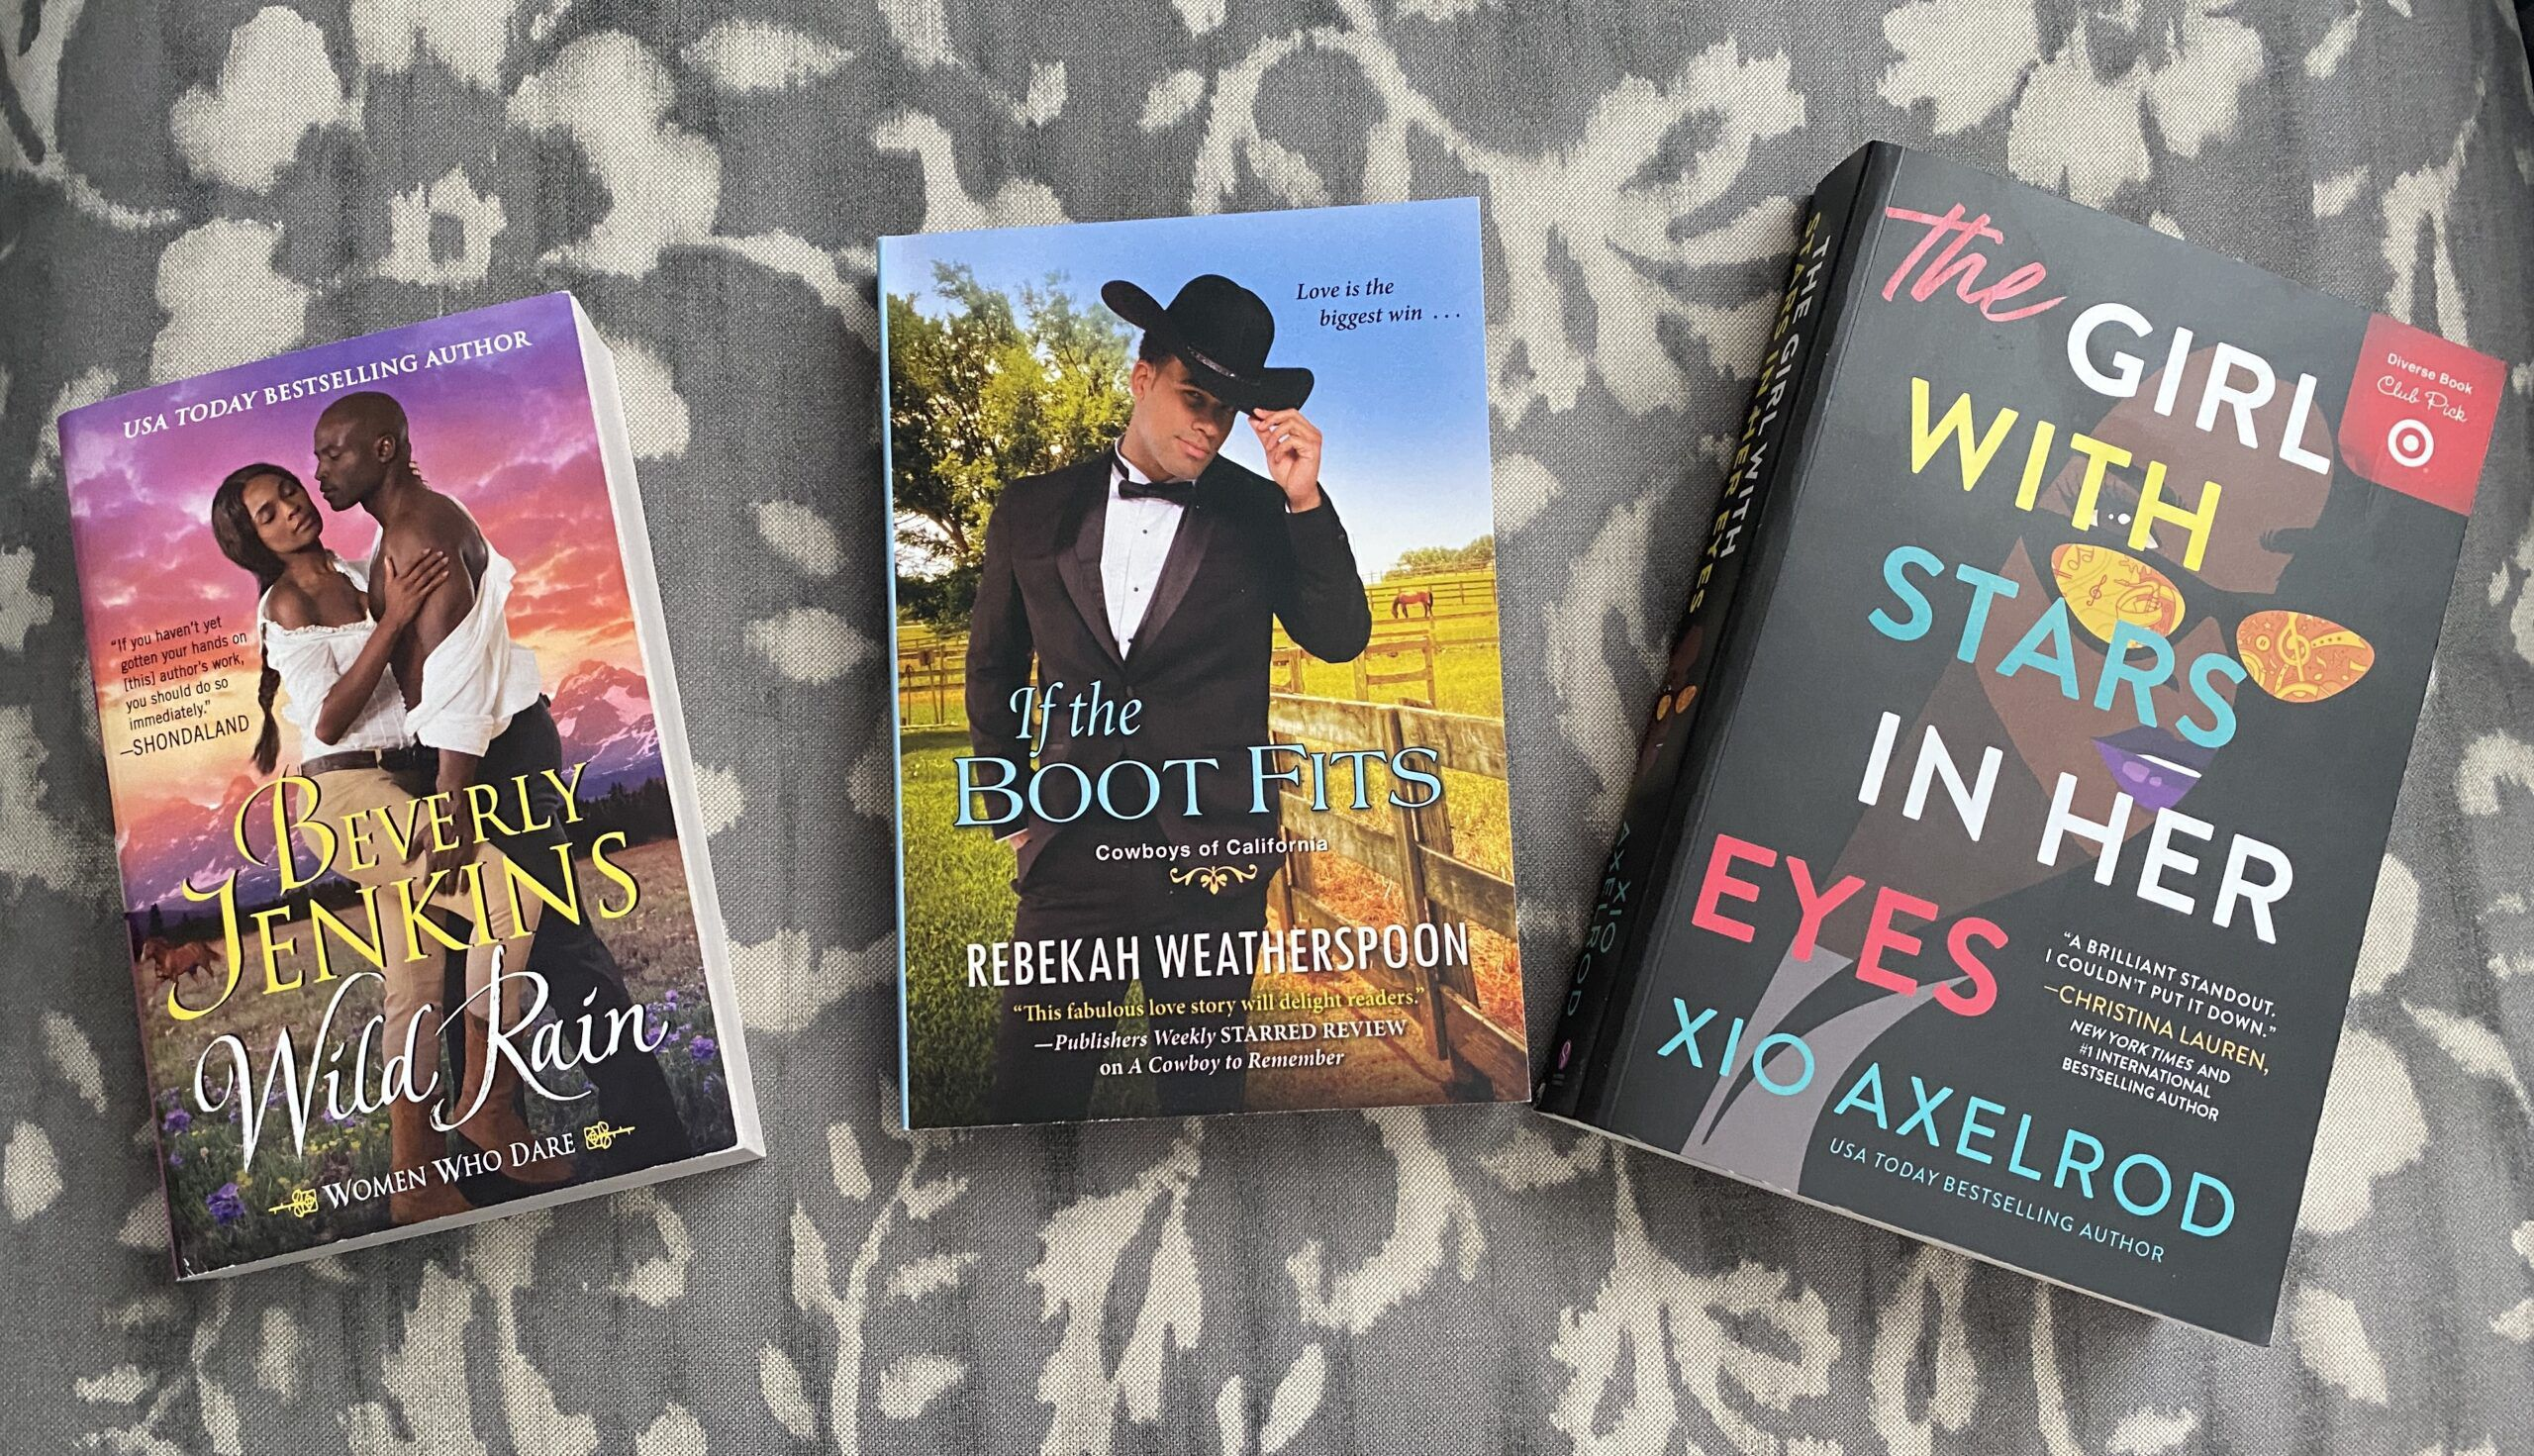 Photograph of three paperback books on a cashmere background.  The book on the left is a mainstream paperback, Wild Rain by Beverly Jenkins.  The middle book is Max Mass, If the Boot Fits by Rebekah Weatherspoon, and the right book is a paperback, The Girl With Stars in Her Eyes by Xio Axelrod.  All three increase in size from left to right.